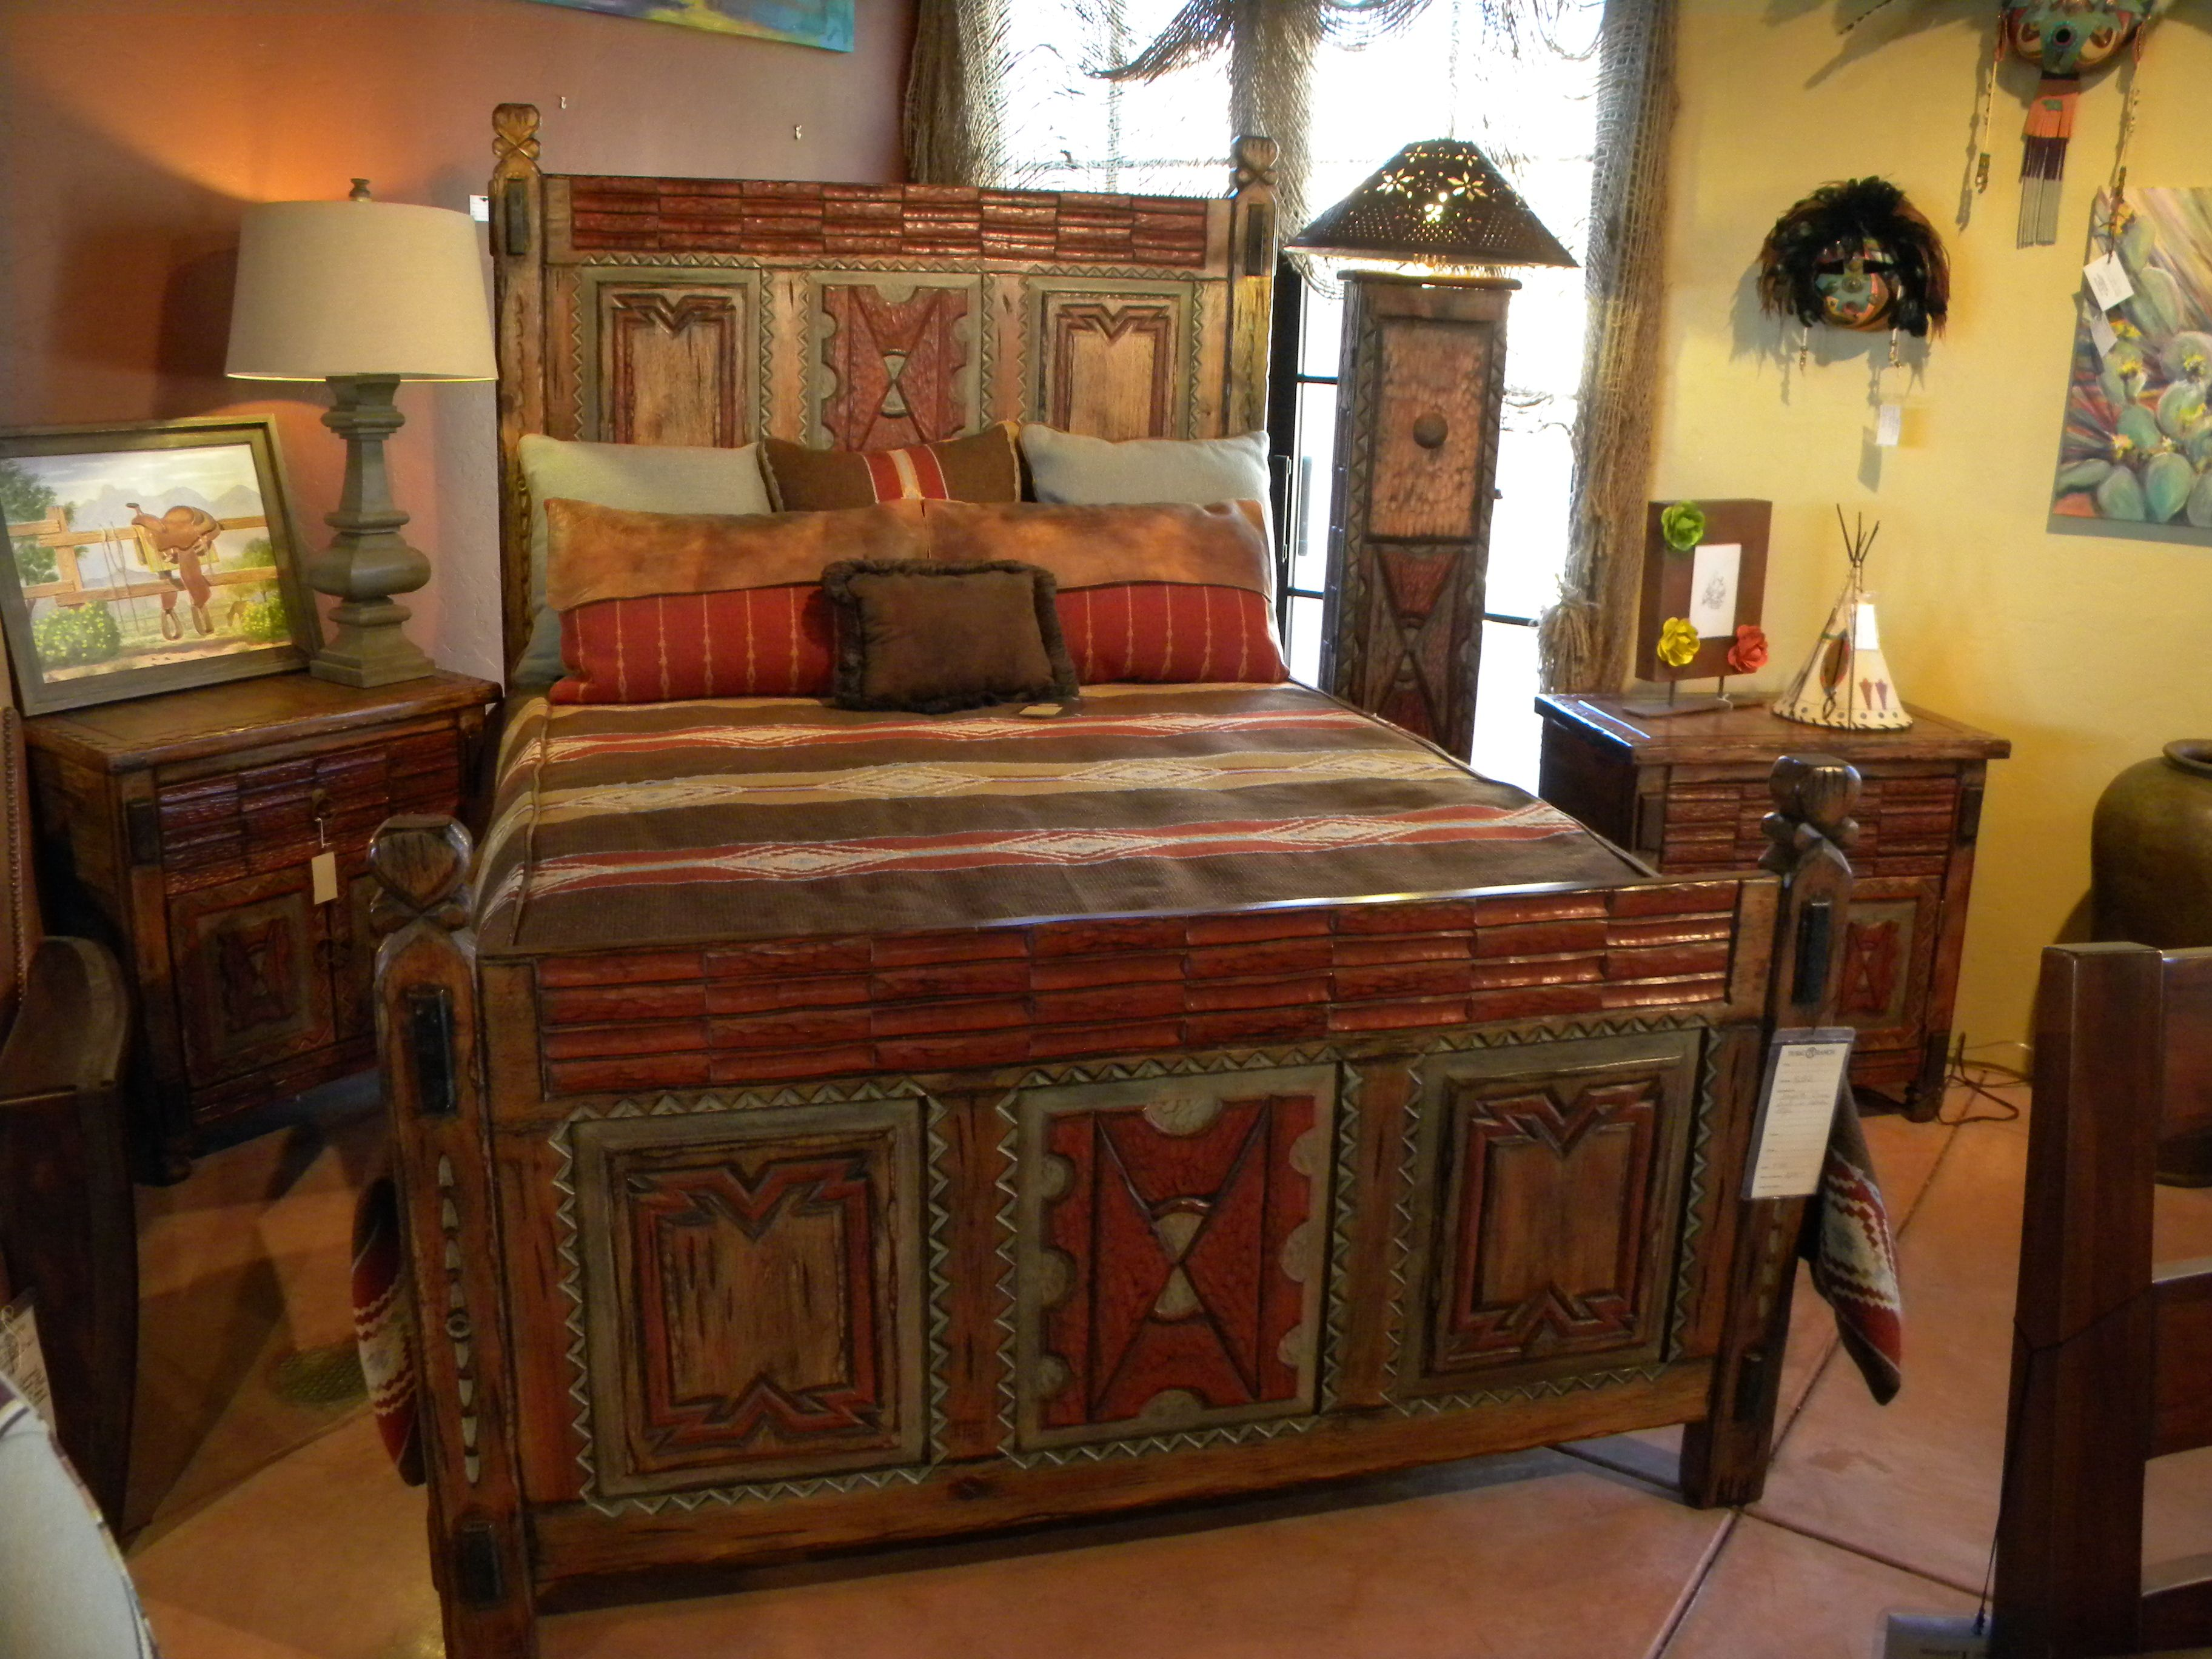 Bed cibuta style spanish colonial pinterest for Spanish style bed